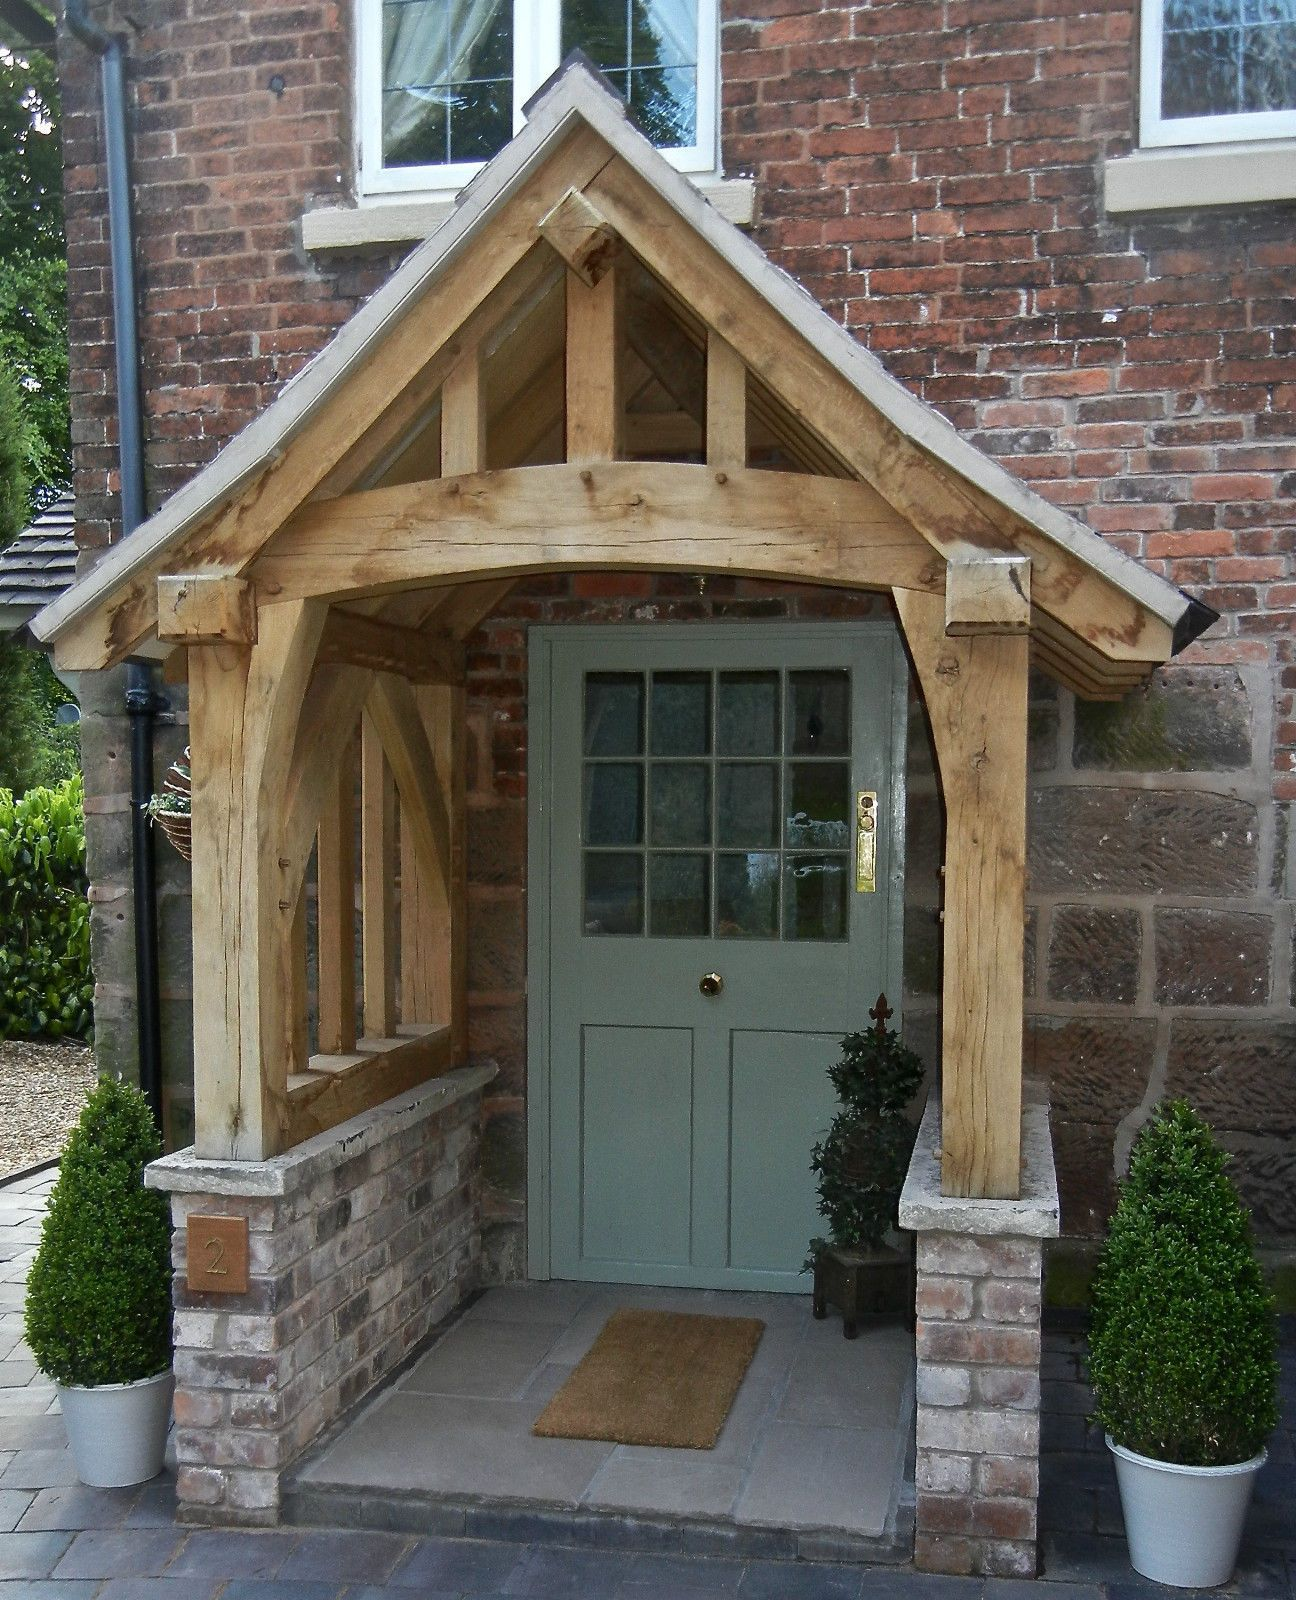 An Oak Frame Home Built For Under 200k: Oak Porch, Doorway, Wooden Porch, CANOPY, Entrance, Self